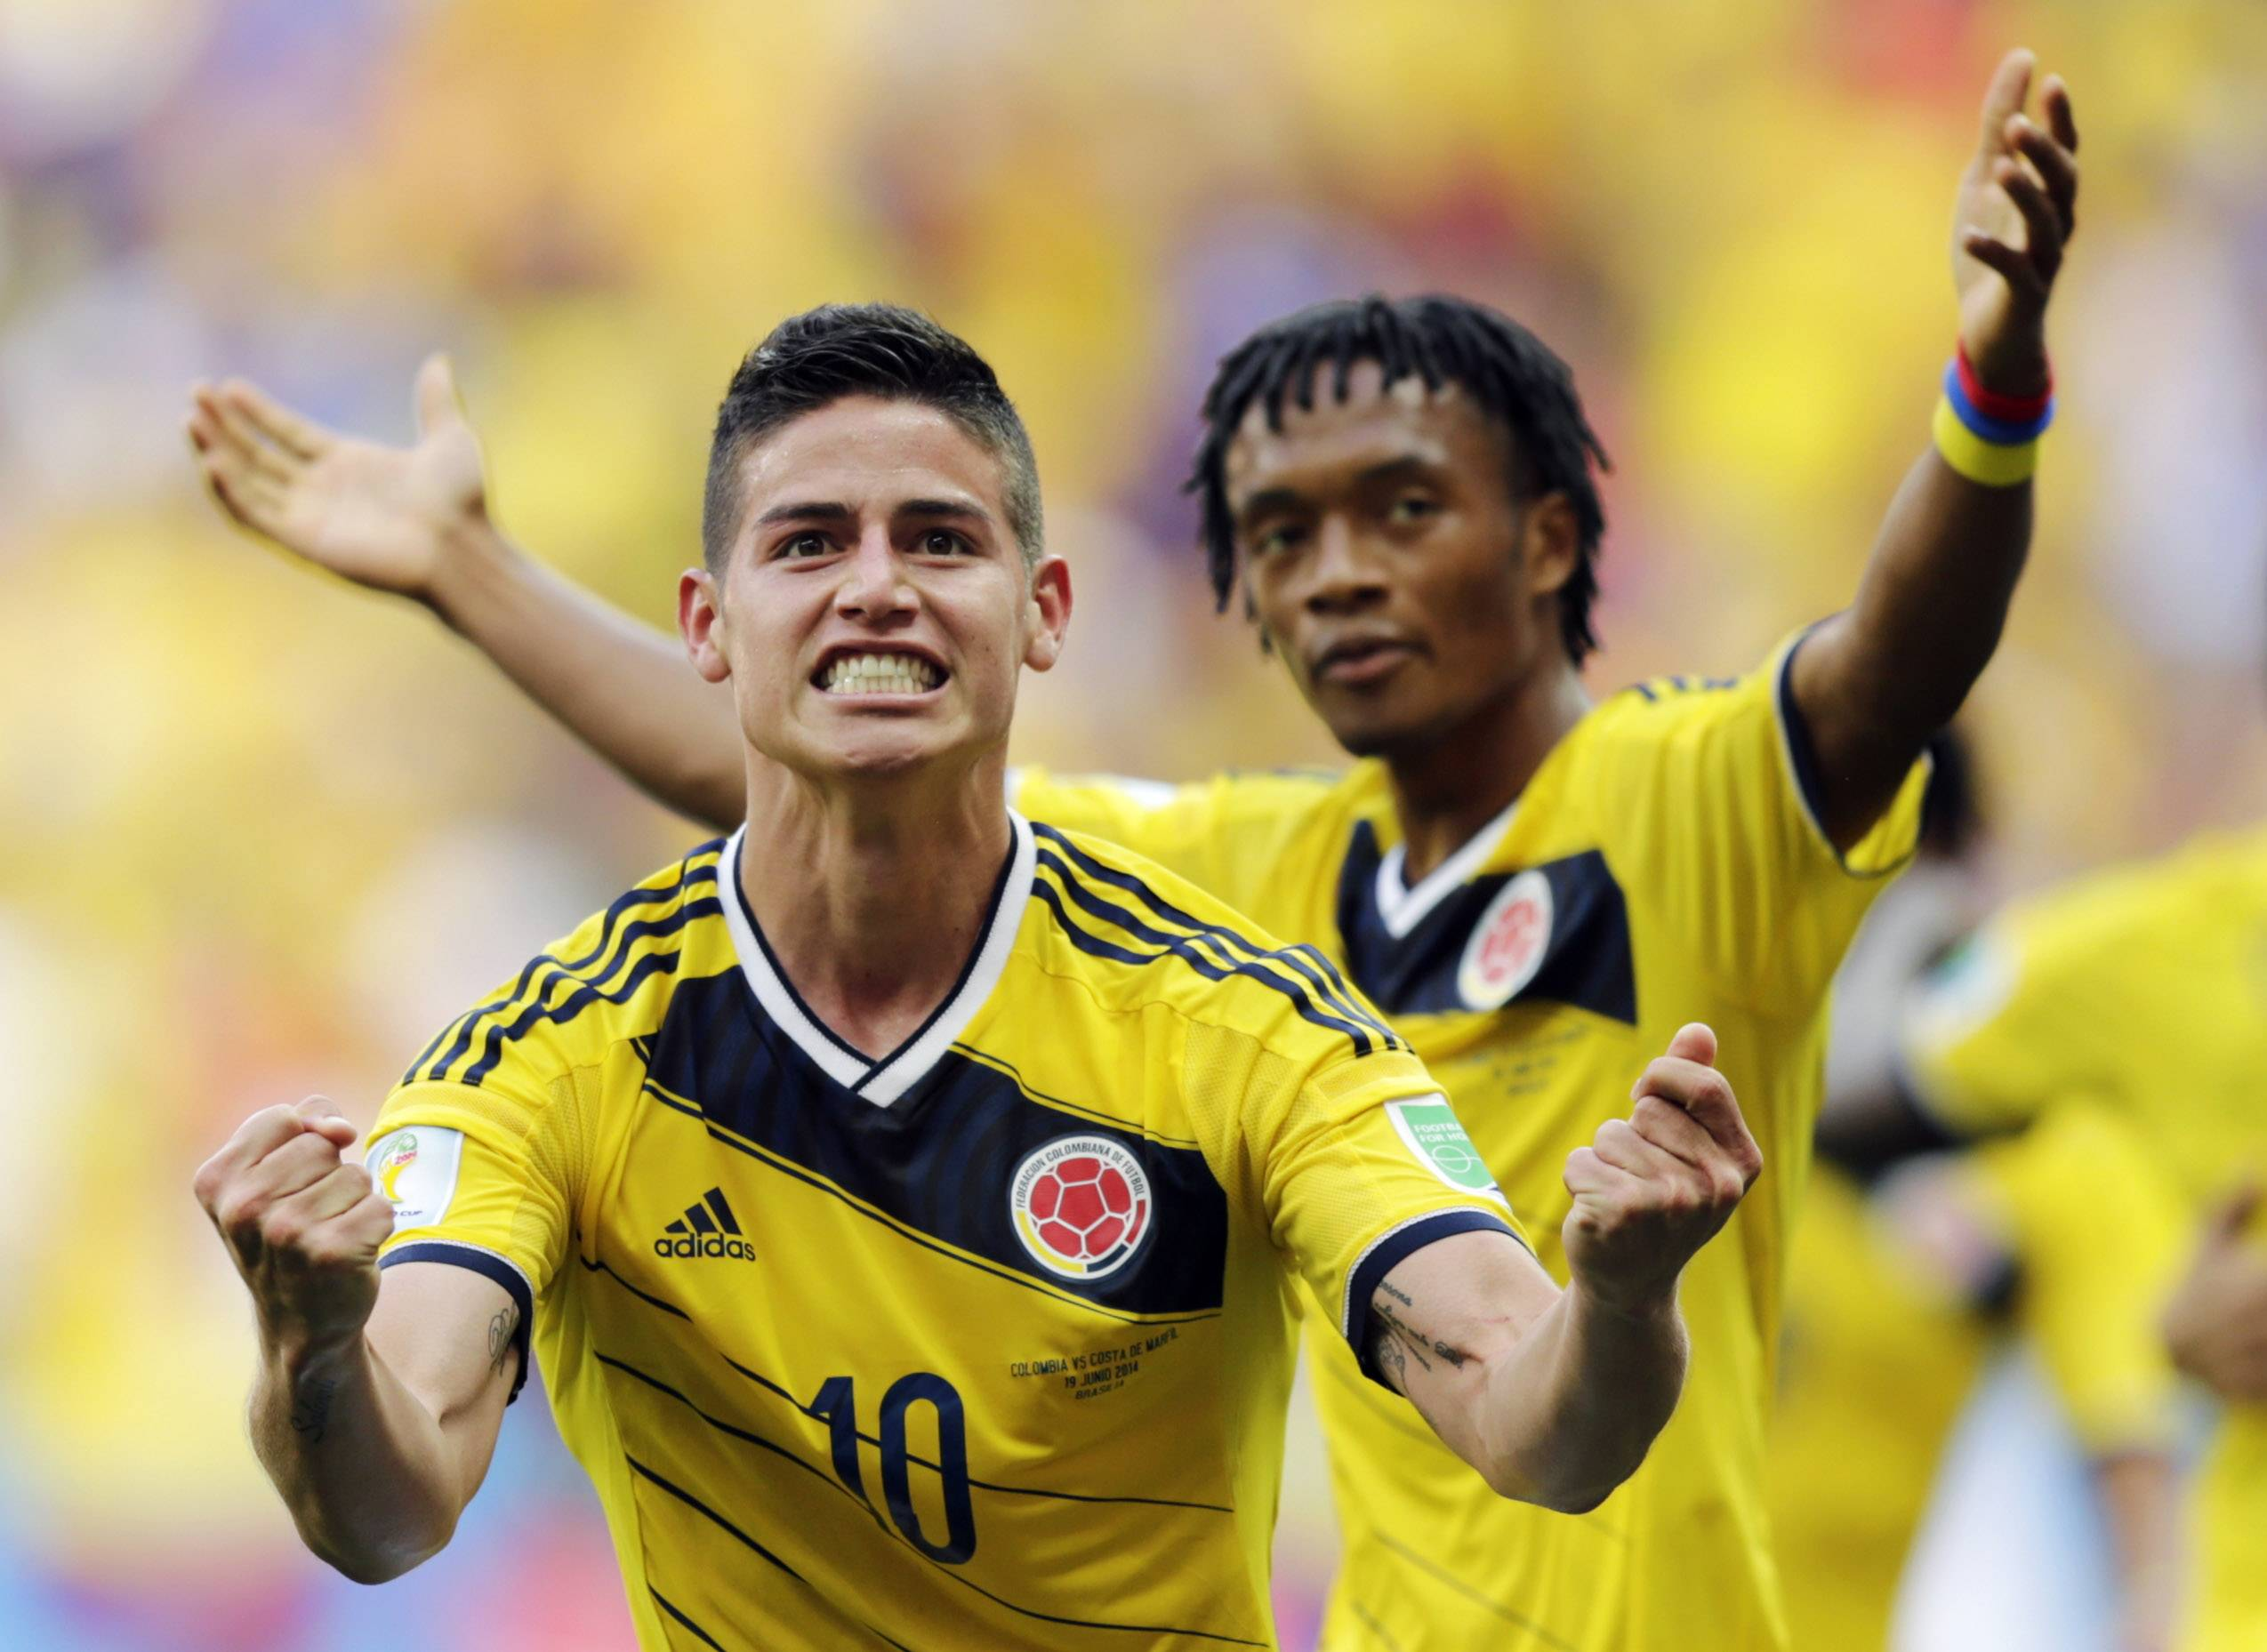 Colombia's James Rodriguez (10) celebrates with teammate Colombia's Juan Cuadrado Thursday after scoring his side's first goal against Ivory Coast during a Group C World Cup soccer match at the Estadio Nacional in Brasilia, Brazil.